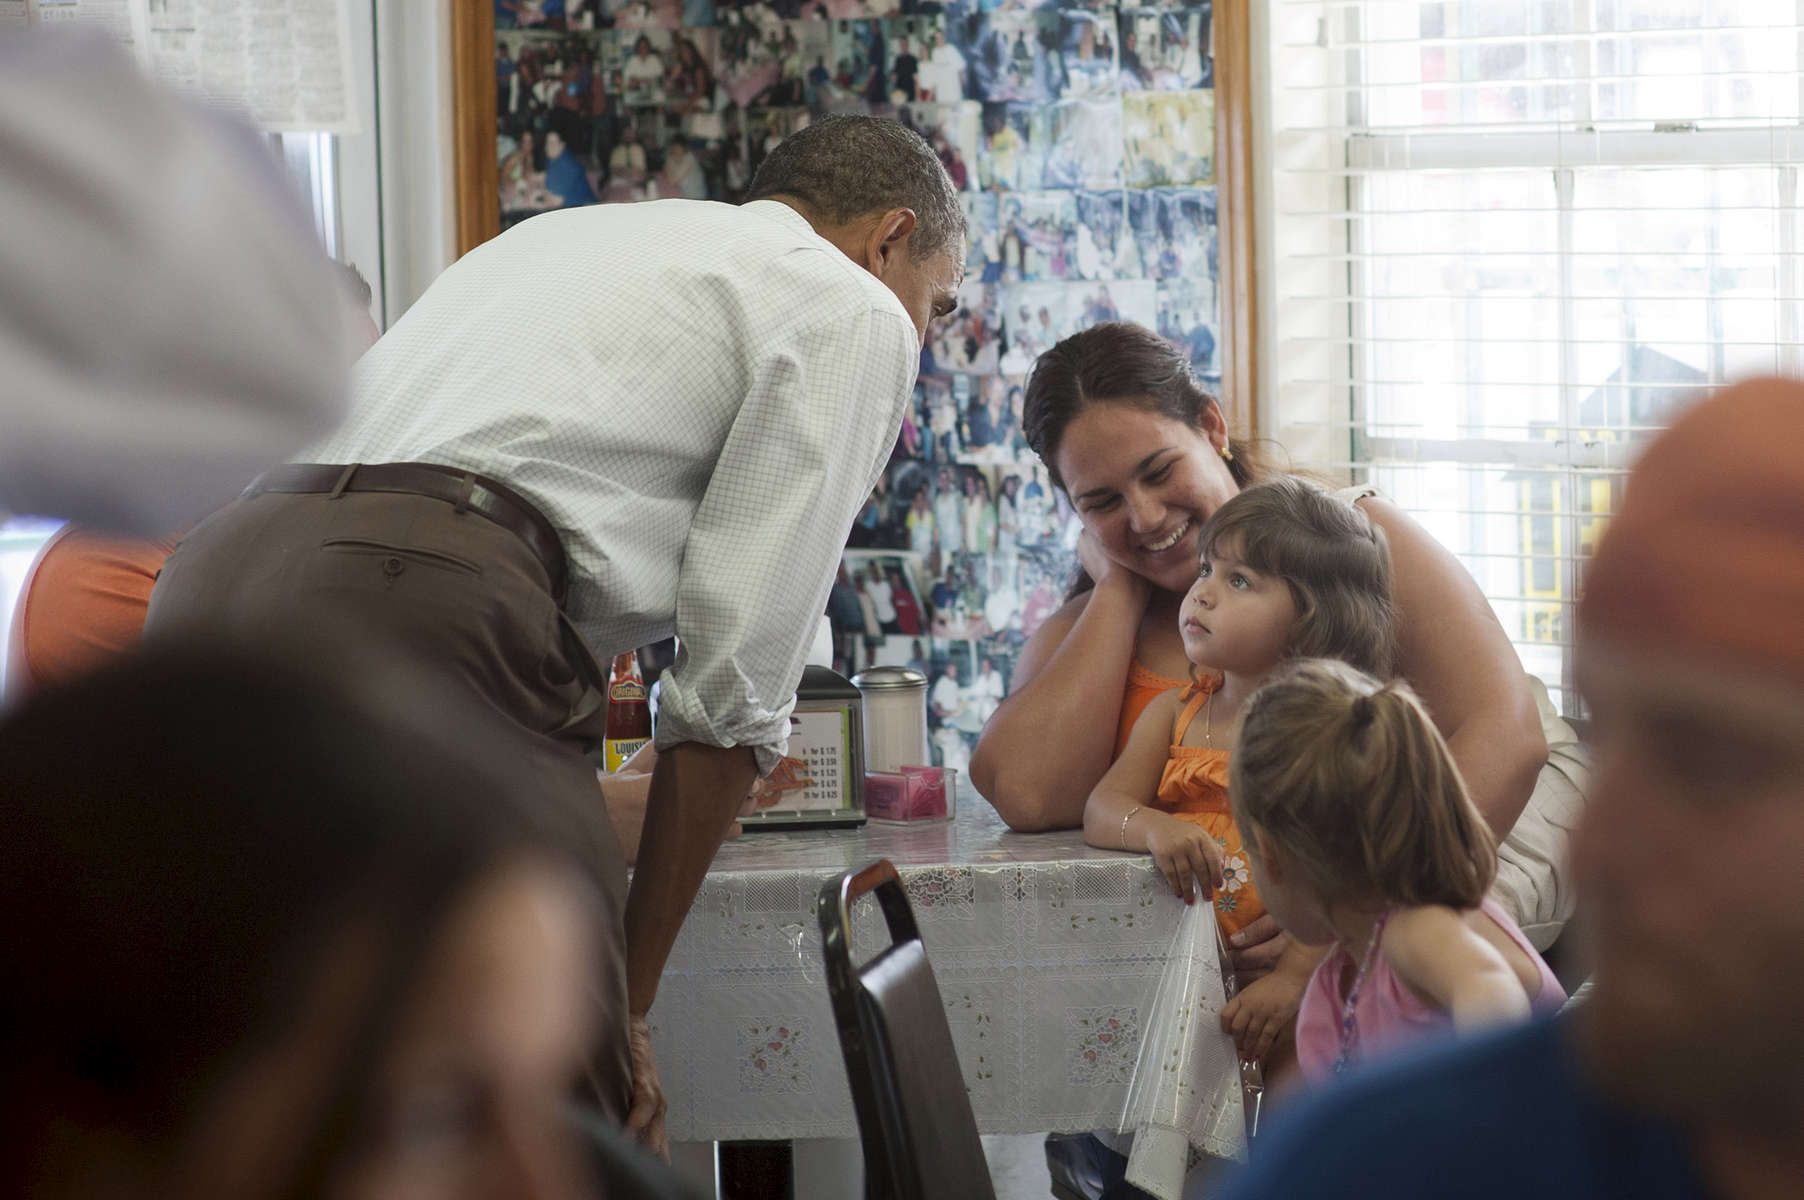 September 8, 2012 - Tampa, FL: President Barack Obama greets a young family at the West Tampa Sandwich Shop and Restaurant in Tampa, FL. (Scout Tufankjian for Obama for America/Polaris)